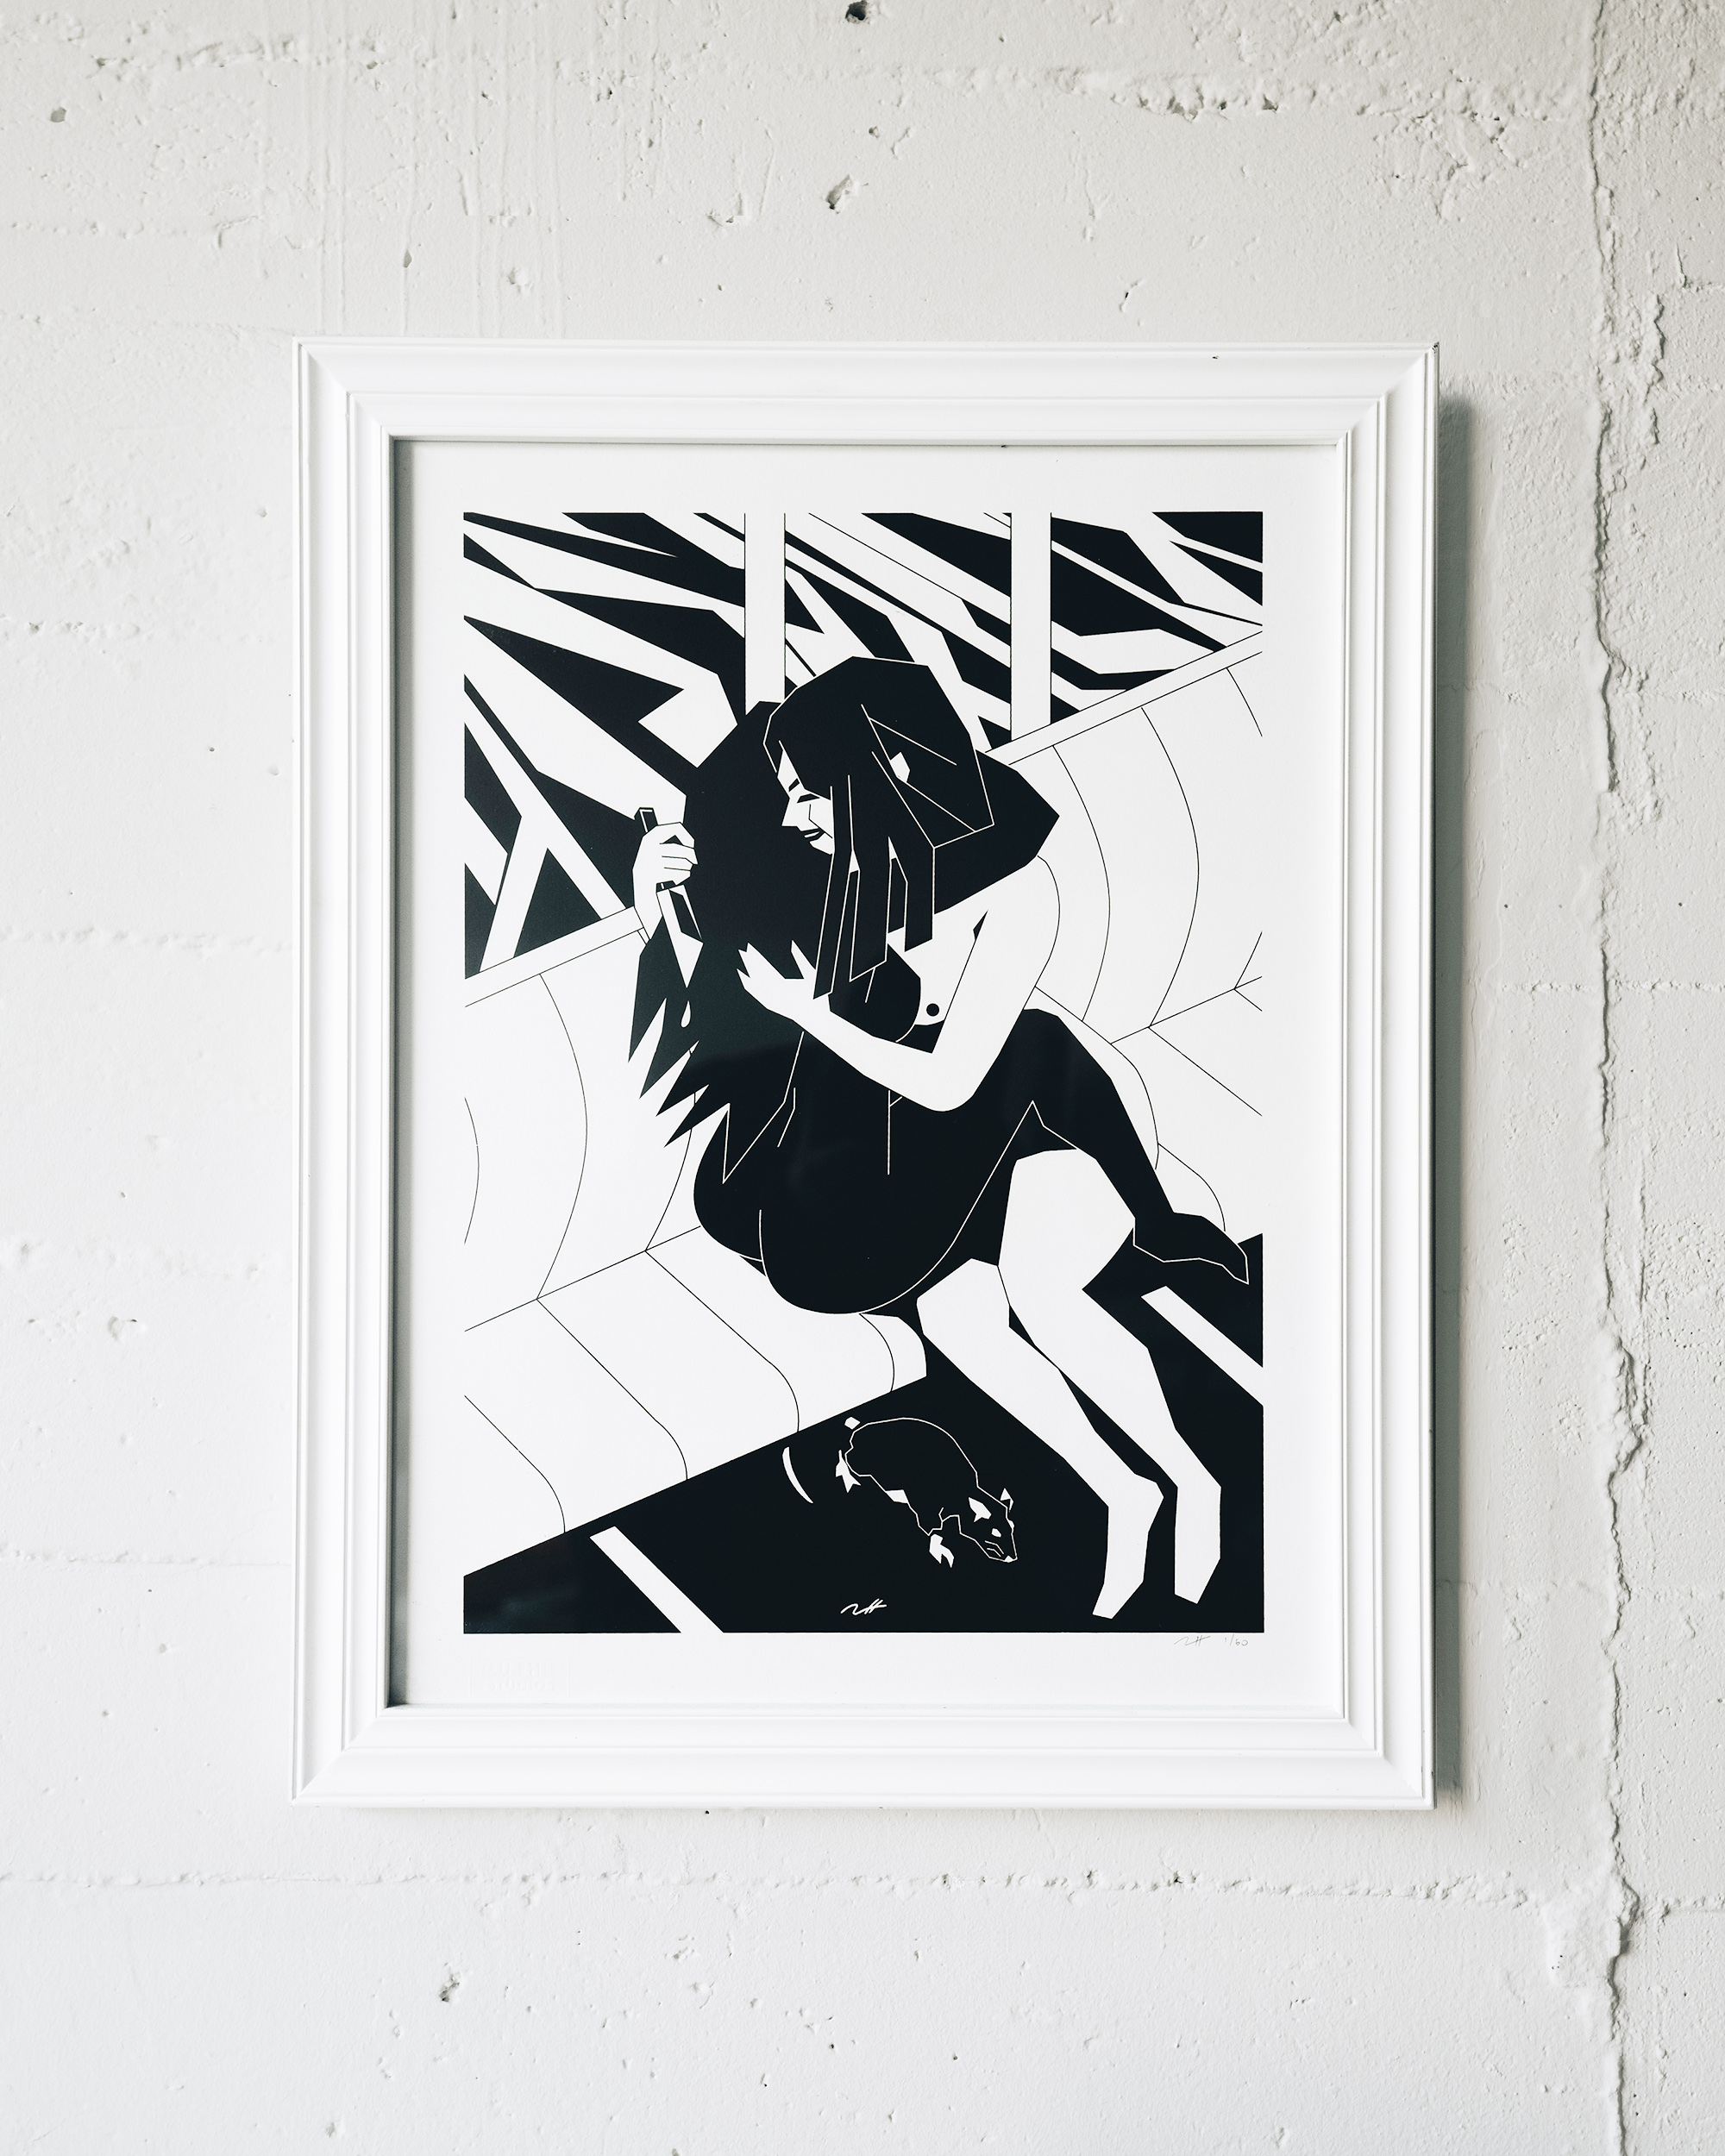 Tommii Lim_Be My Valentine_18%22x24%22_signed and numbered LIMited edition screenprint (edition of 60)_2019.jpg